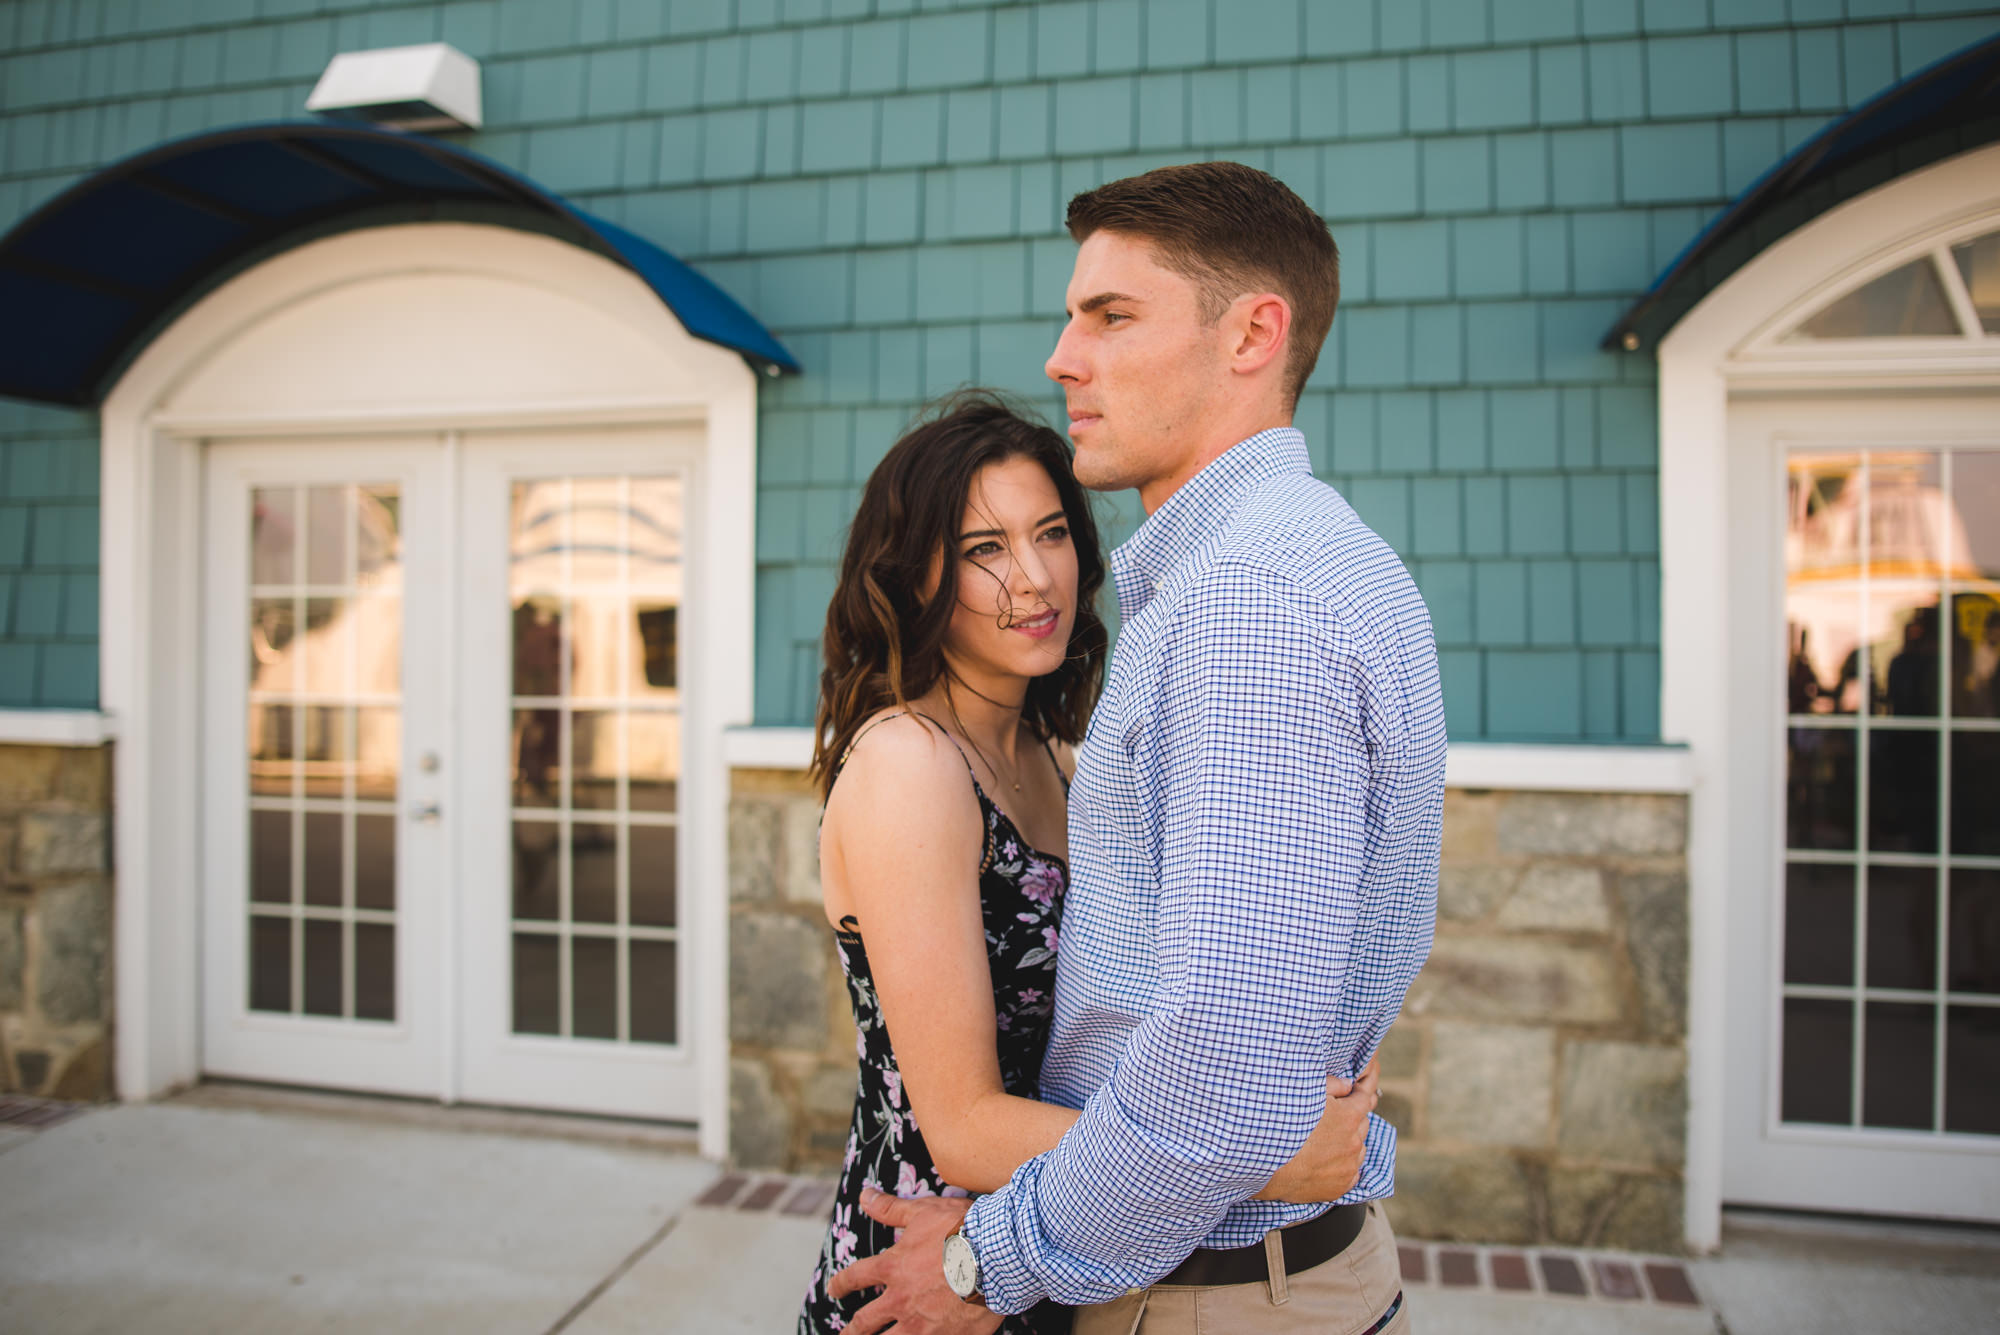 Alexandria-Old-Town-Elegant-Engagement-Pictures-by-Gabriele-Stonyte-Photography-1.jpg